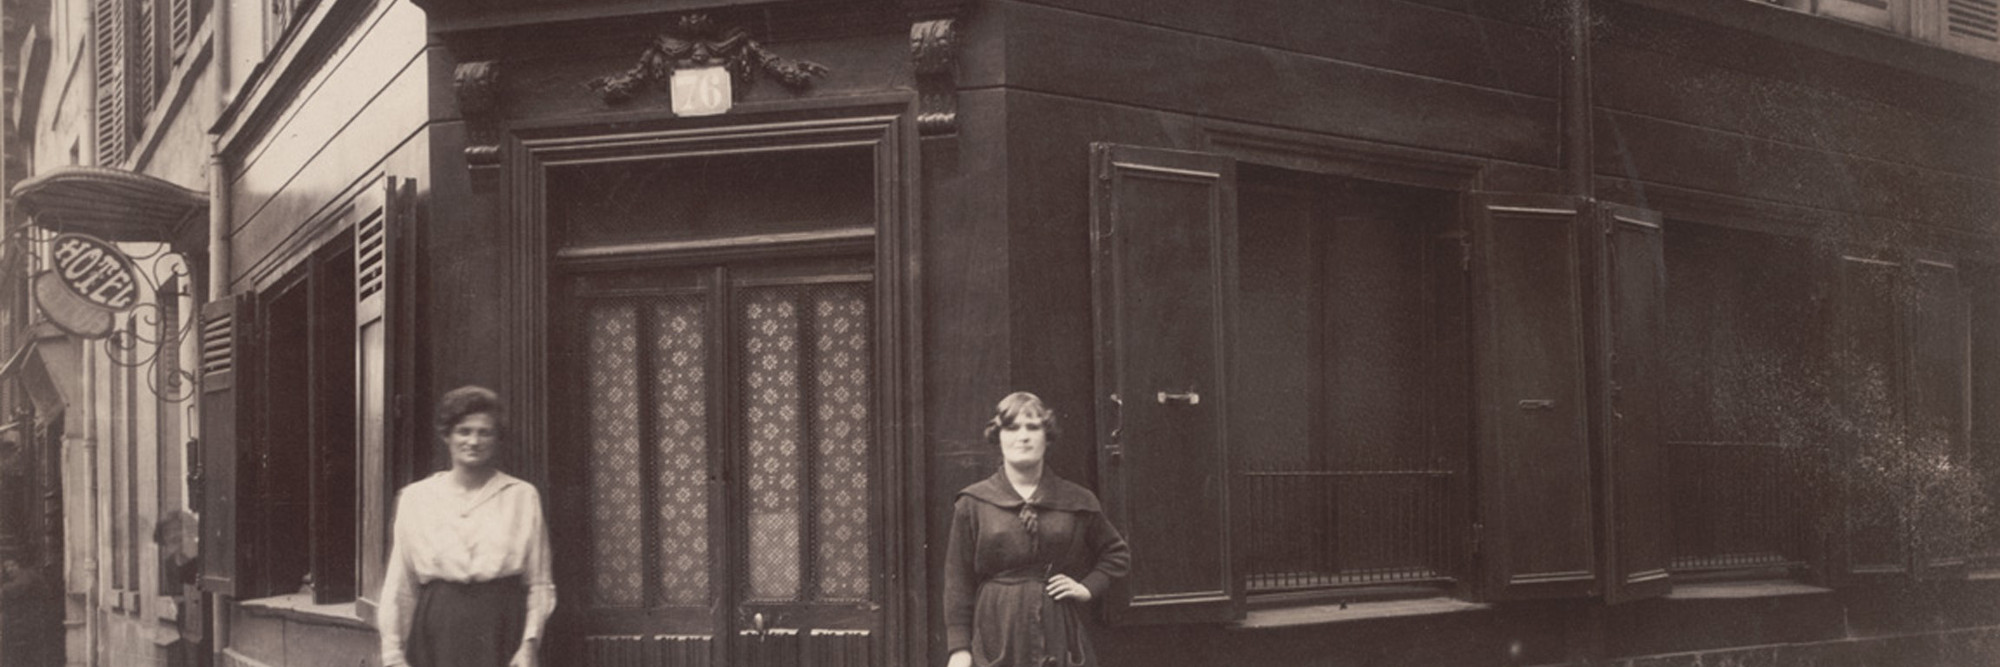 Eugène Atget. Coin, Boulevard de la Chapelle et Rue Fleury 76, 18E. June 1921. Matte albumen silver print, 6 13/16 × 9″ (17.3 × 22.9 cm). The Museum of Modern Art, New York. Abbott-Levy Collection. Partial gift of Shirley C. Burden